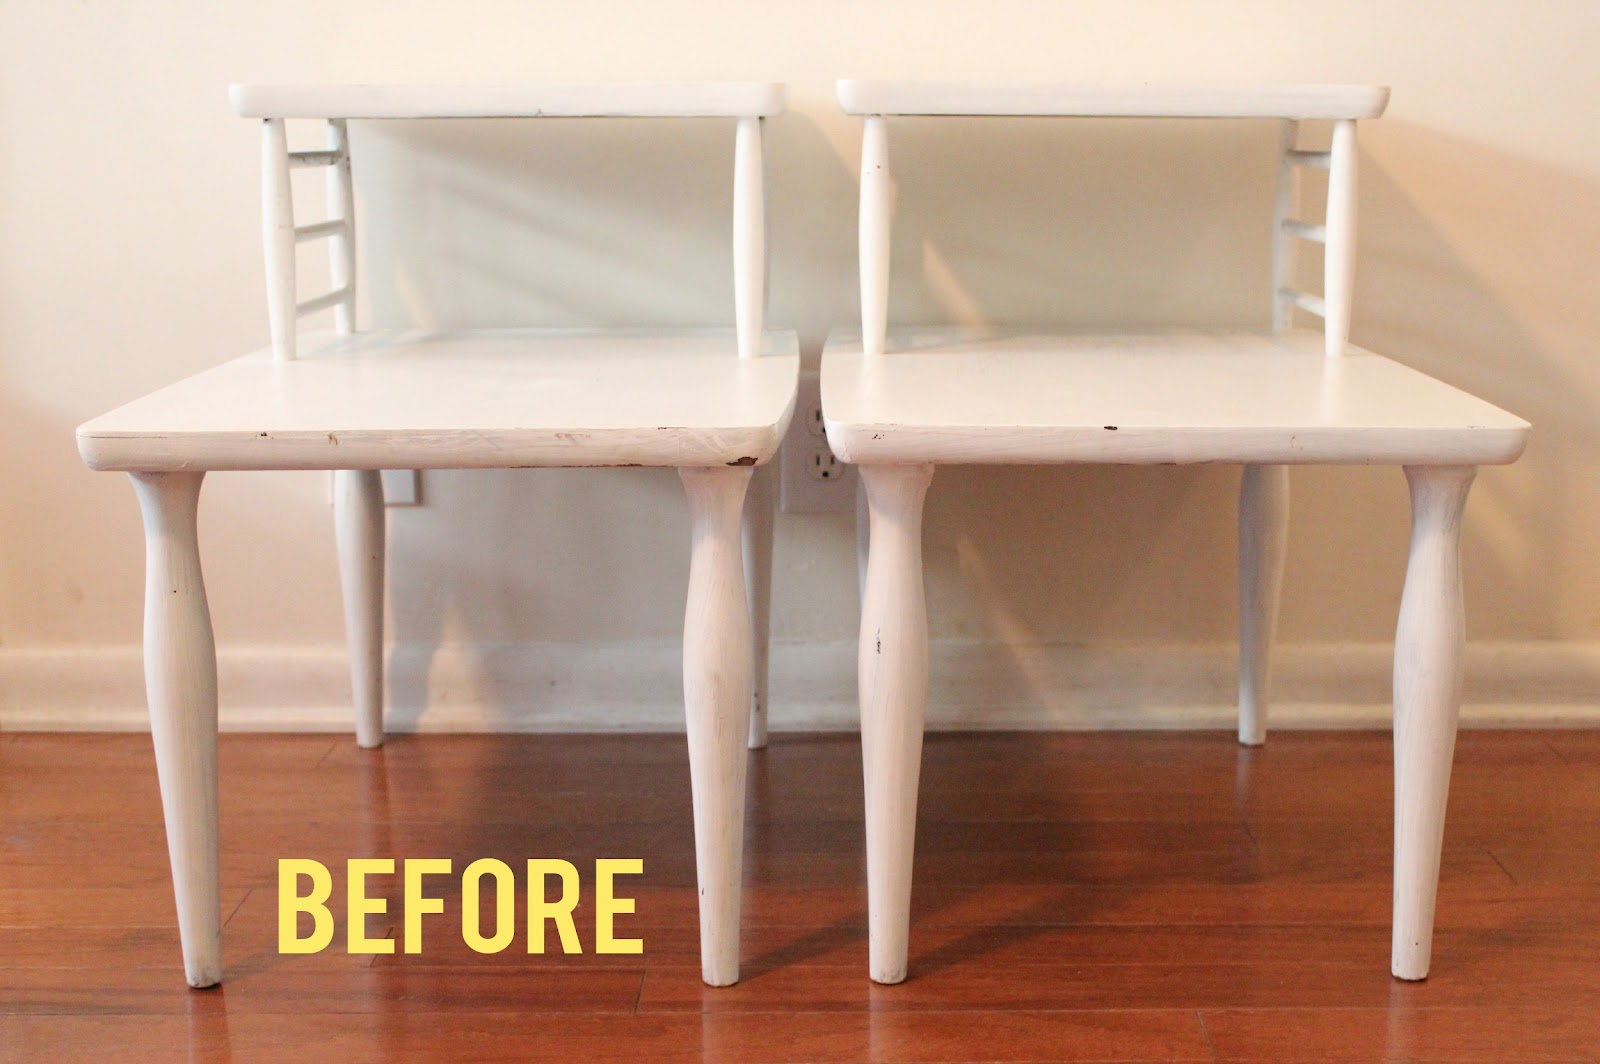 Diy End Table These 2 vintage end tables